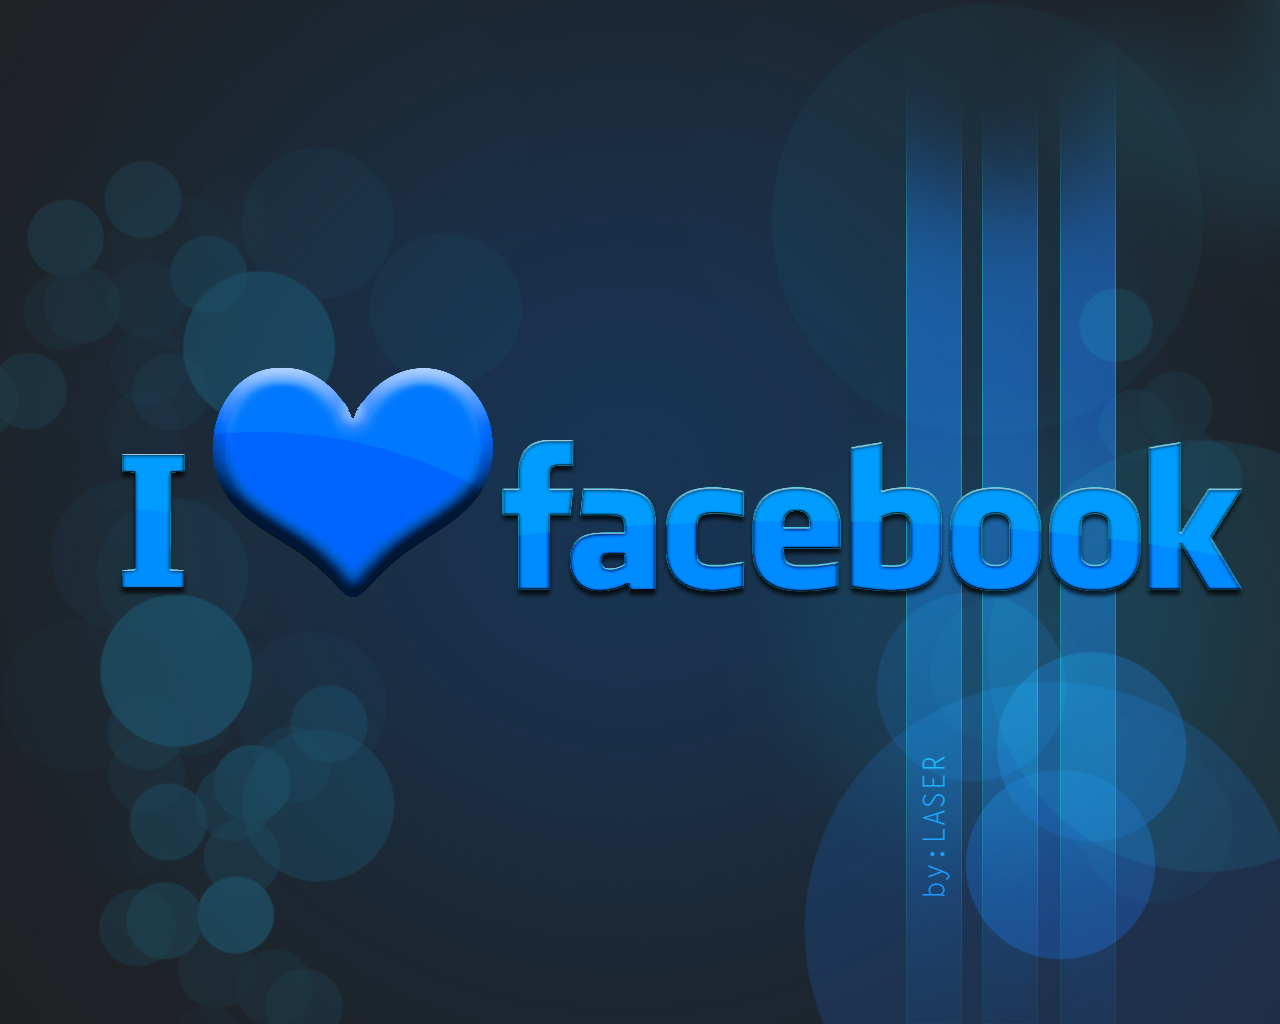 Love Wallpaper For Profile : Facebook wallpaper Free HD:computer Wallpaper Free Wallpaper Downloads